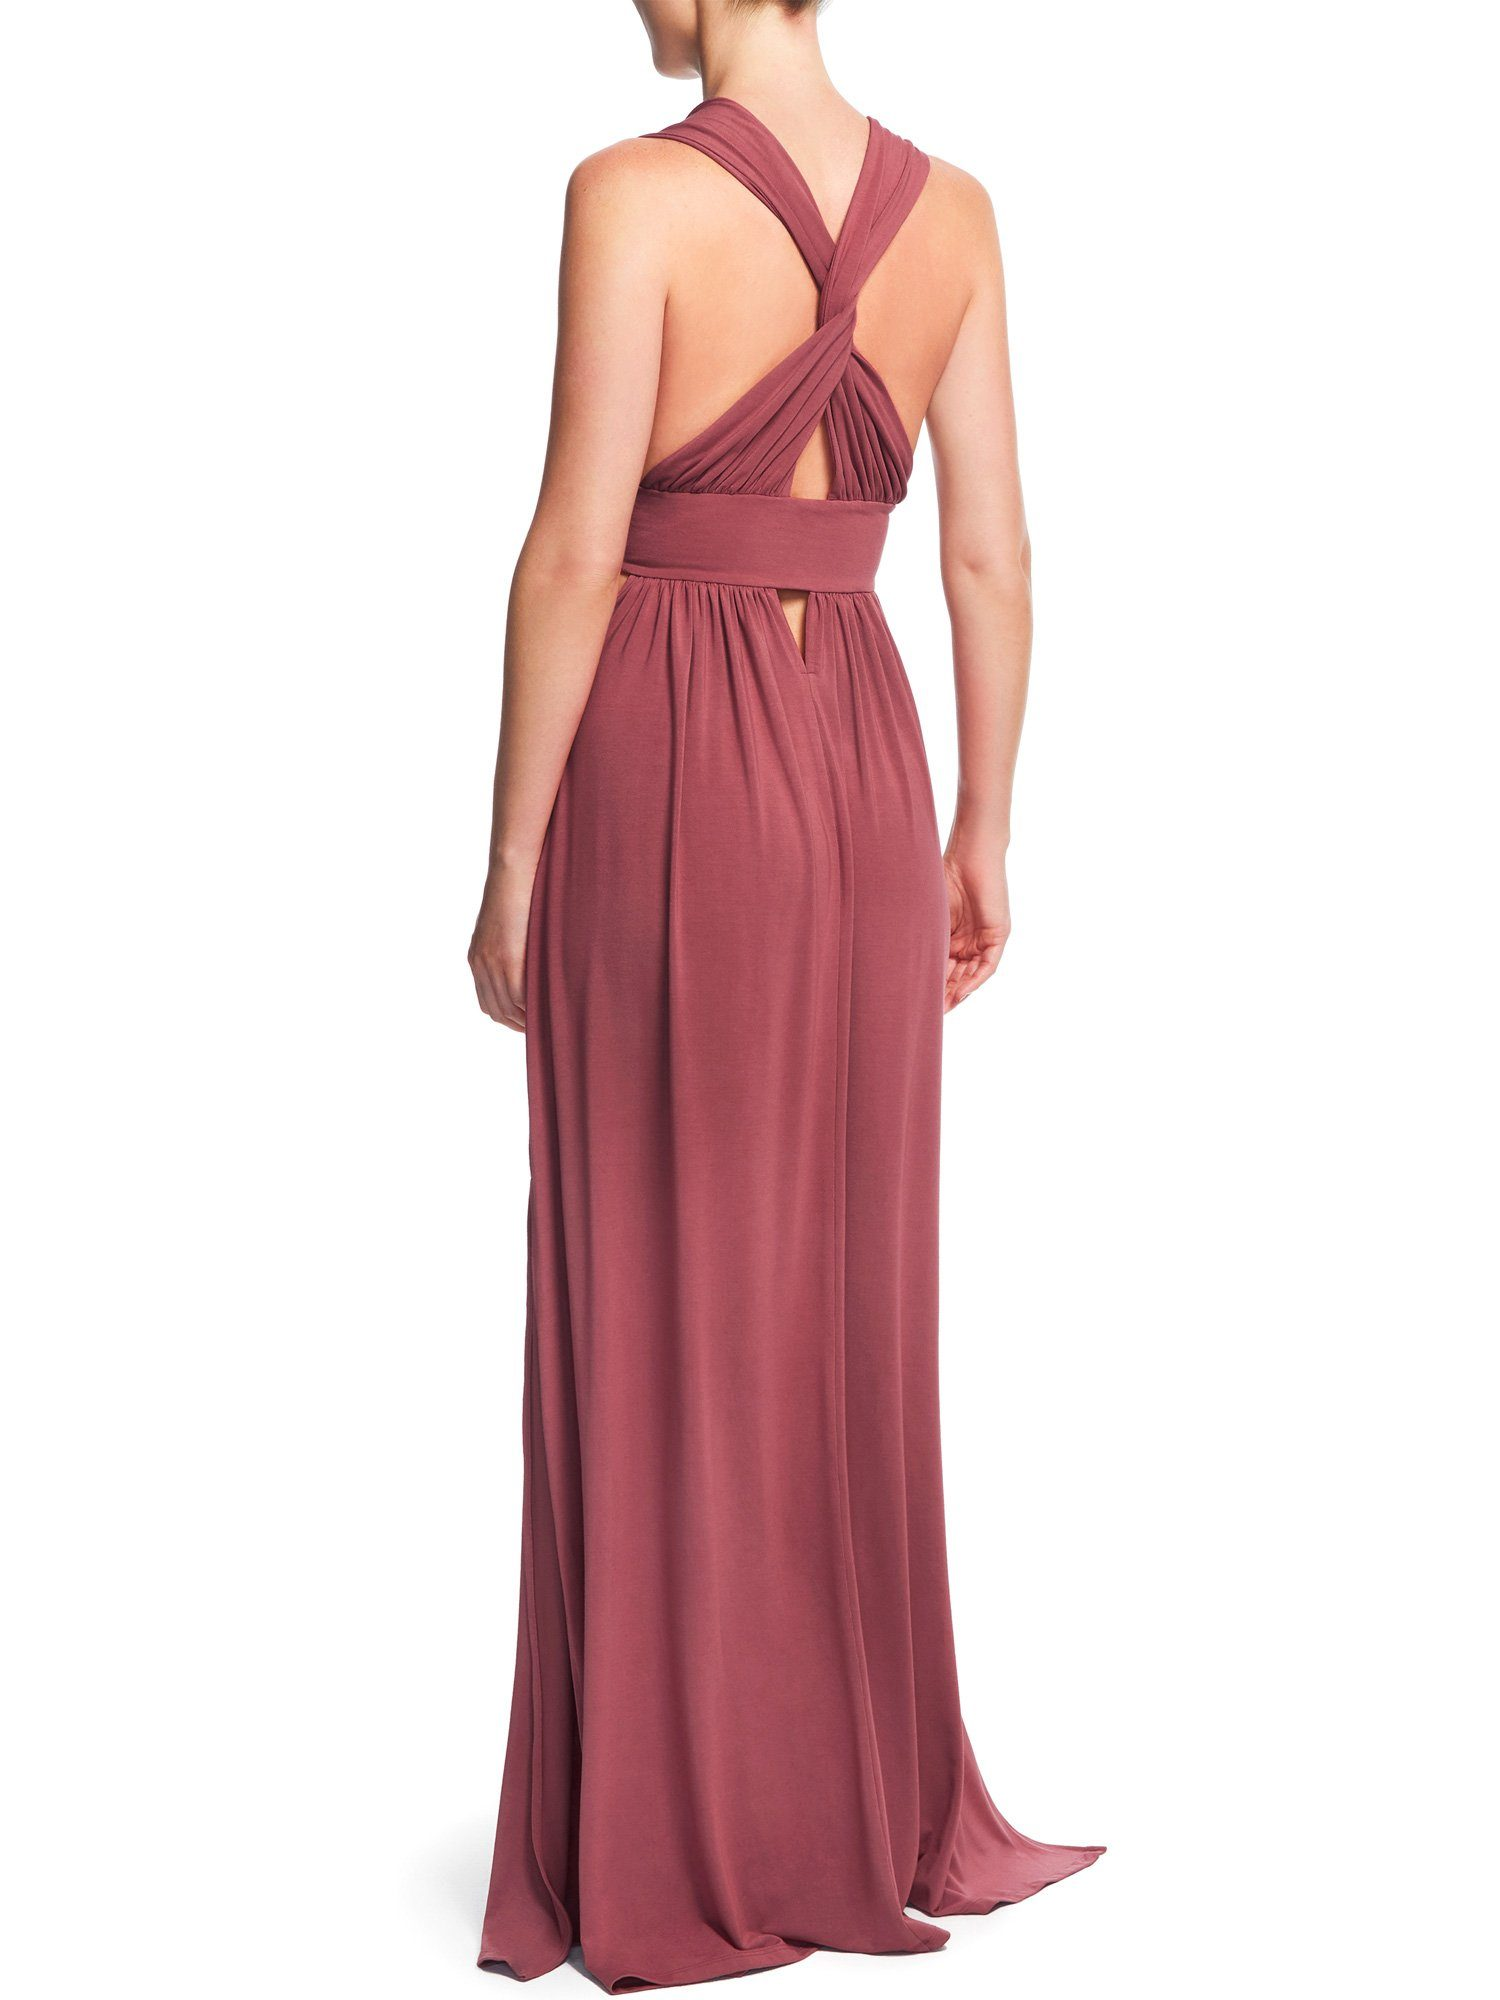 Signature Maxi Gown - NEW COLOR Dresses by Le Marché by NP